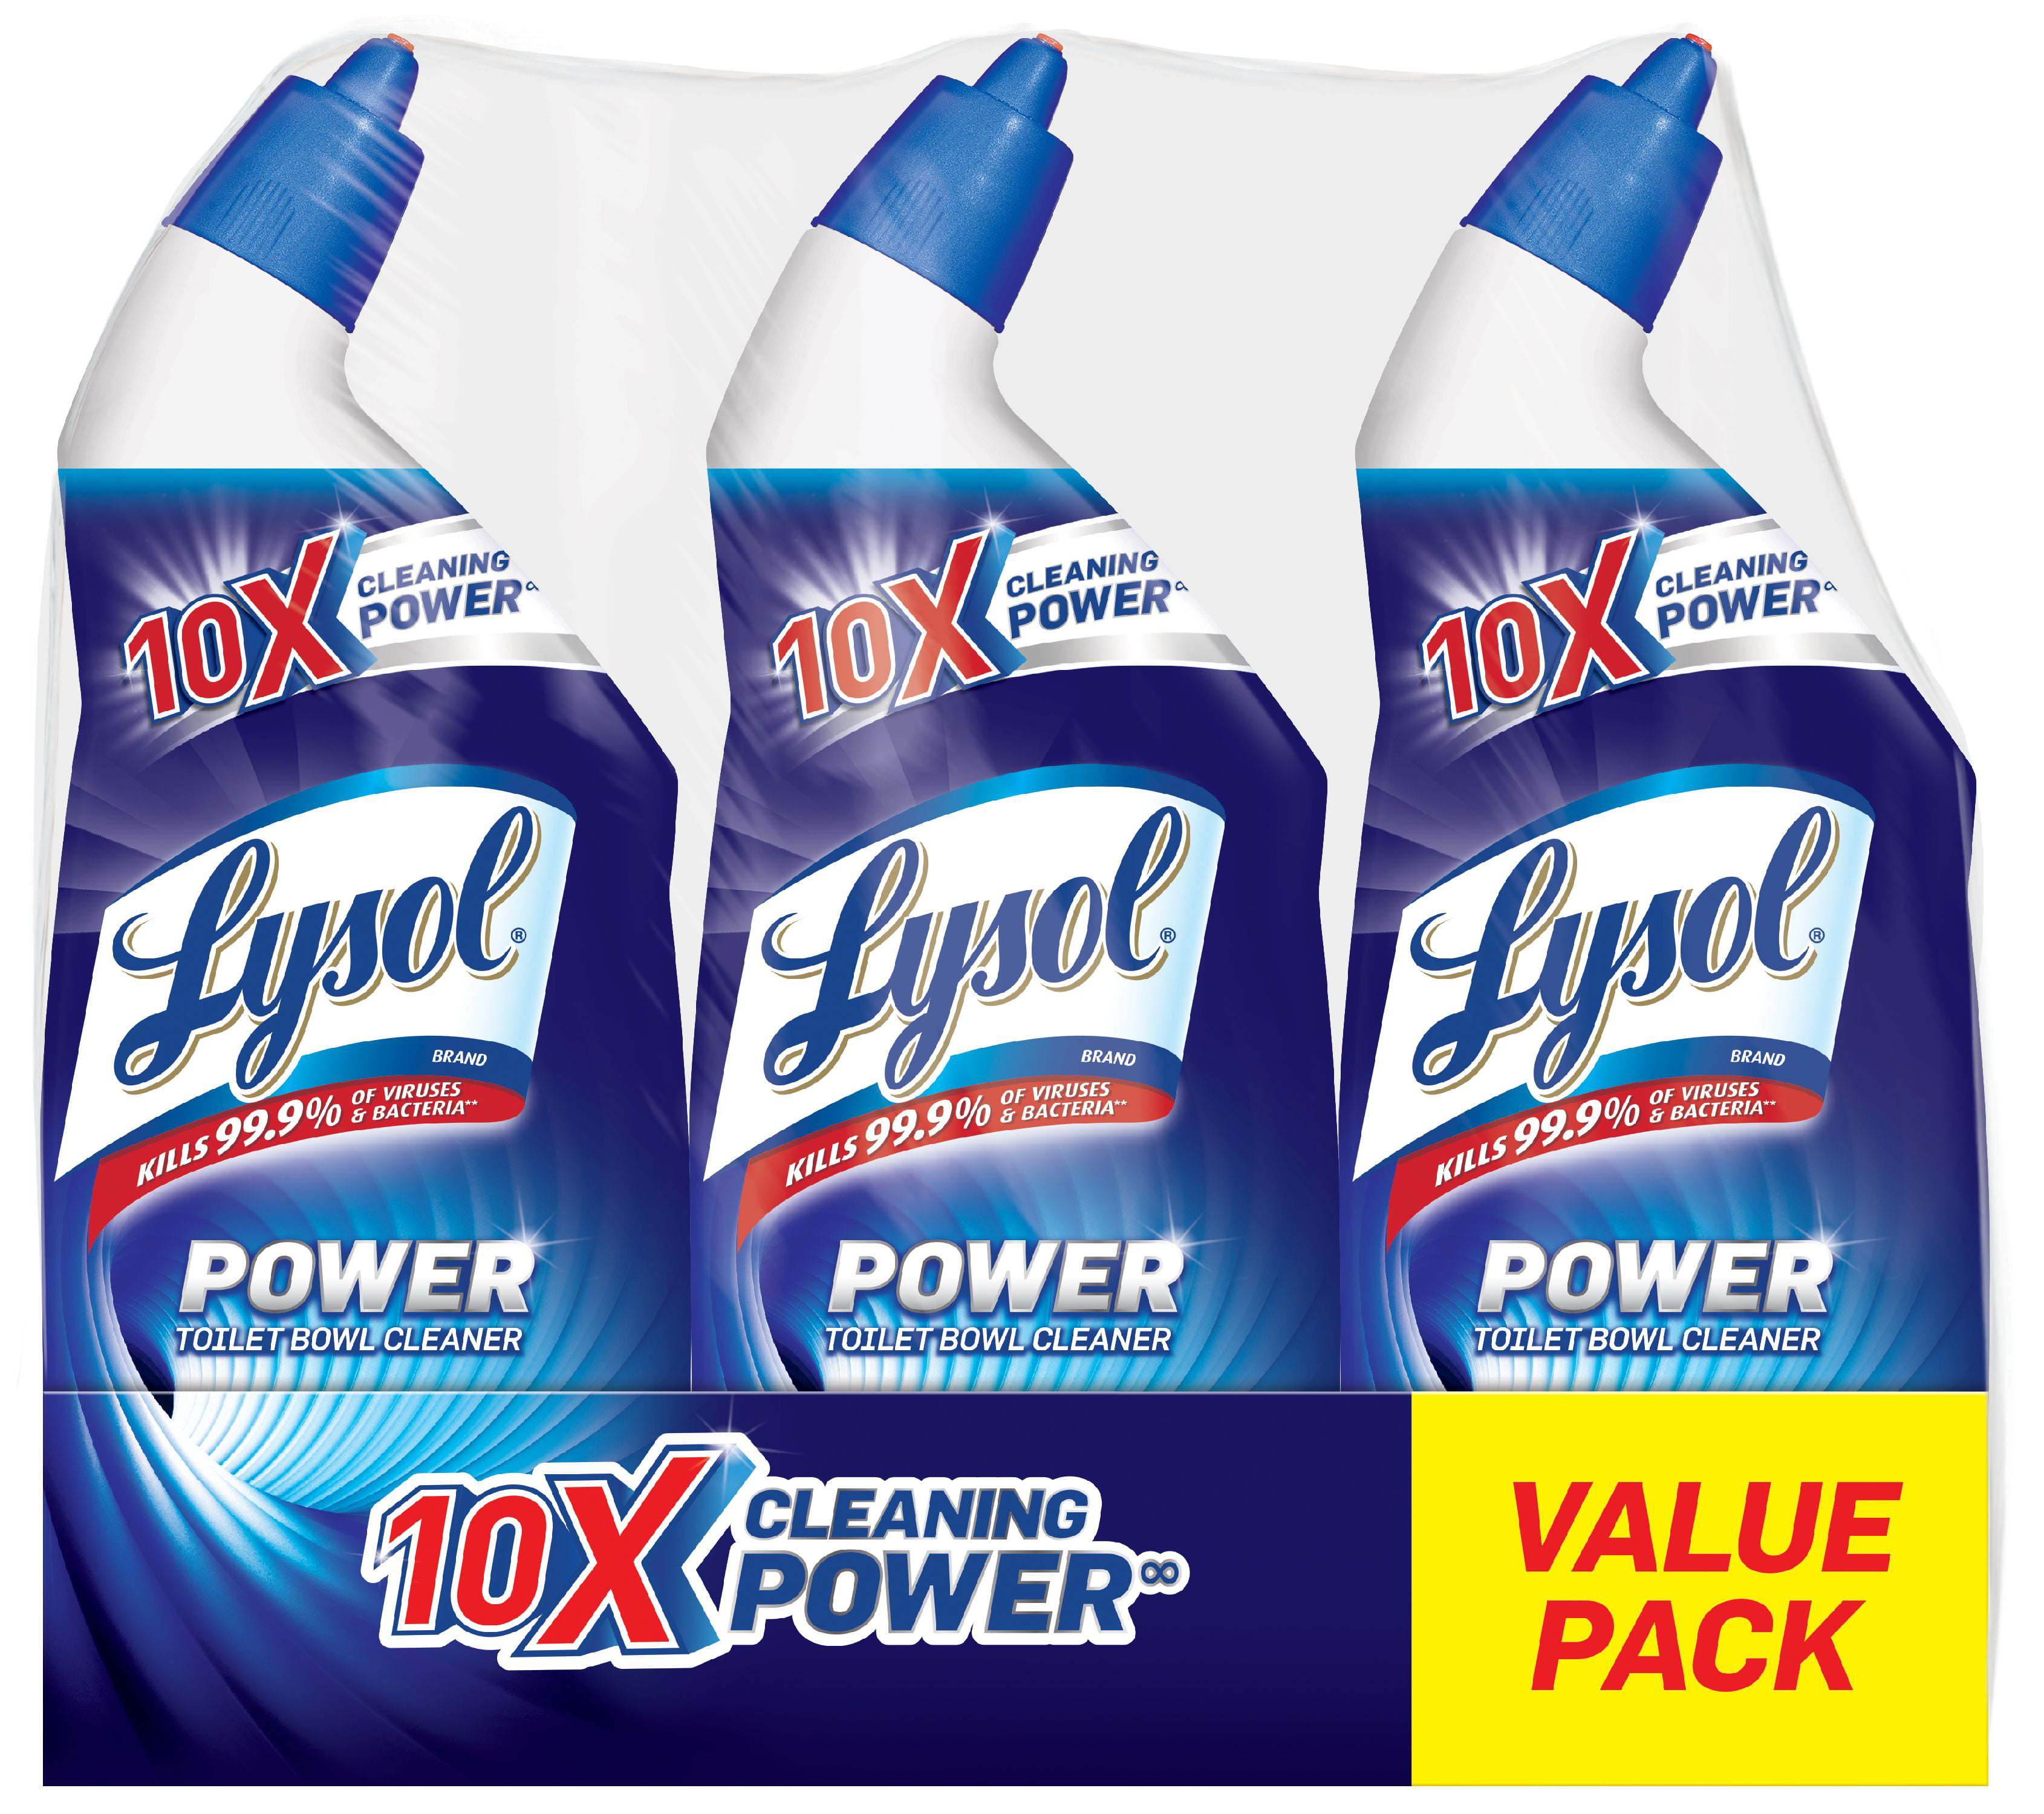 Lysol Power Toilet Bowl Cleaner, 72oz, Fights Toilet Rings & Stains